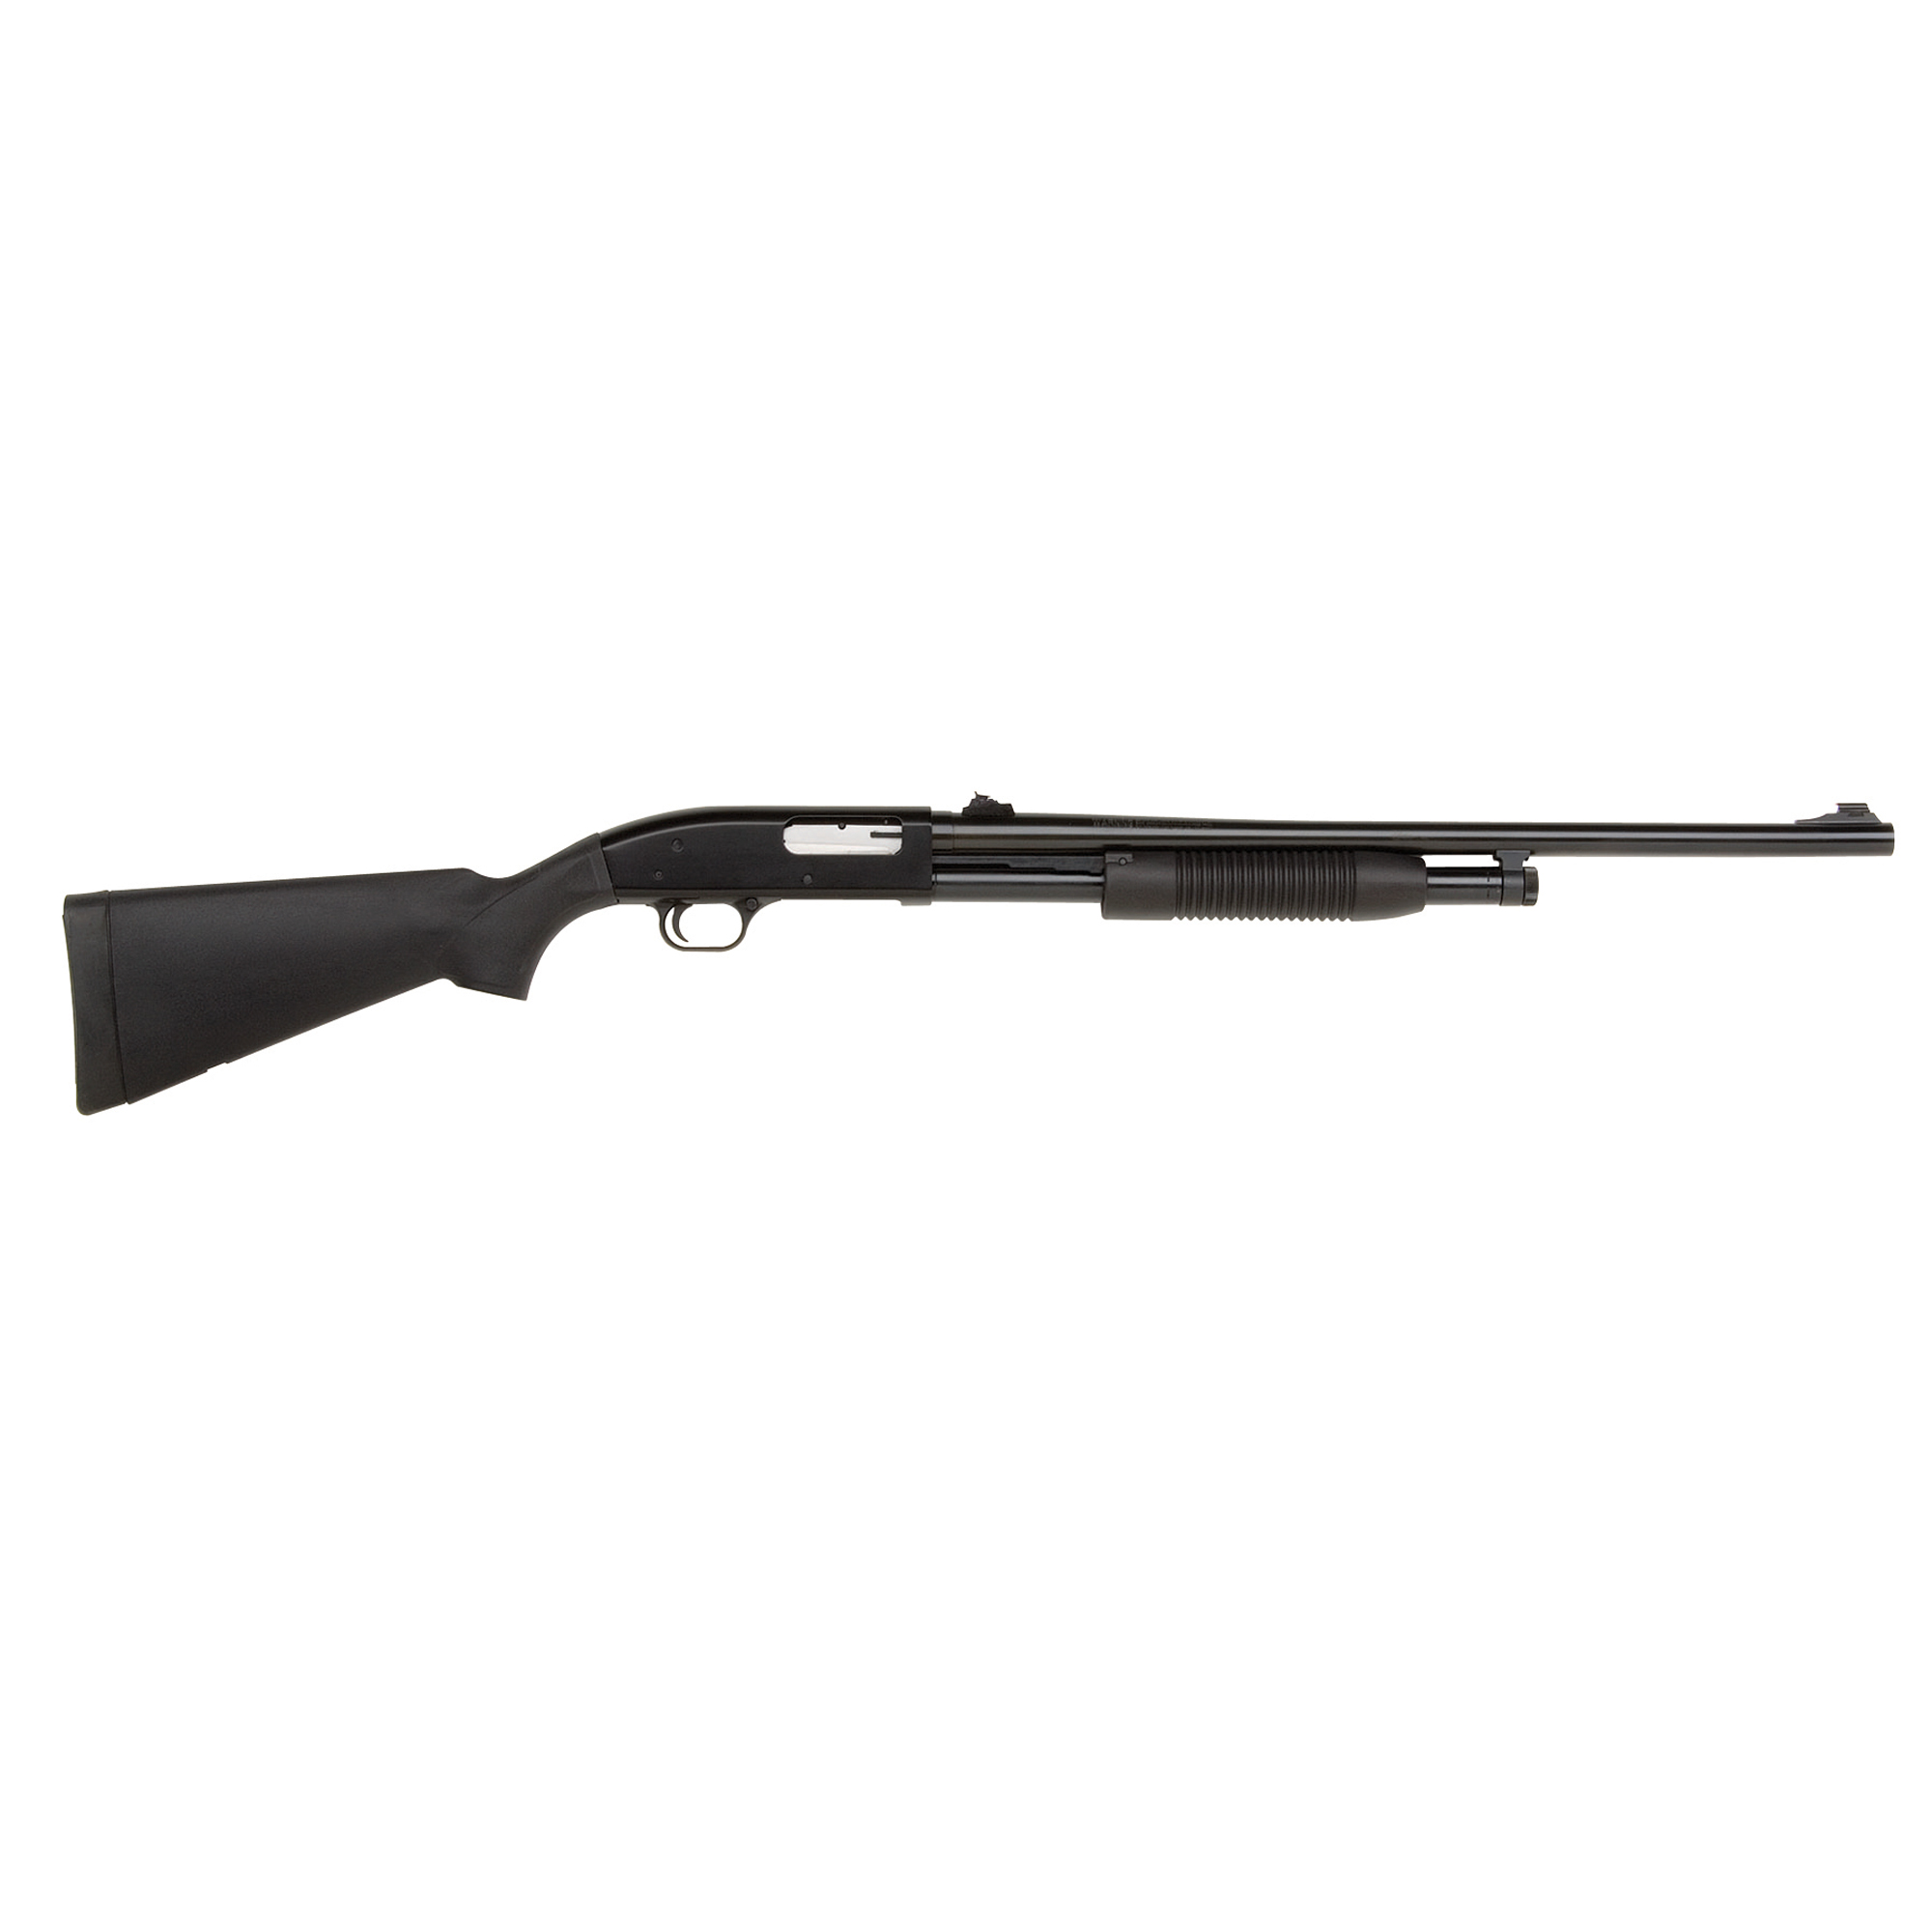 """The working man's shotgun"""" the Maverick line of pump-action and over/under shotguns are proven performers - Equally at home in the woods"""" upland fields"""" or on home security duty."""